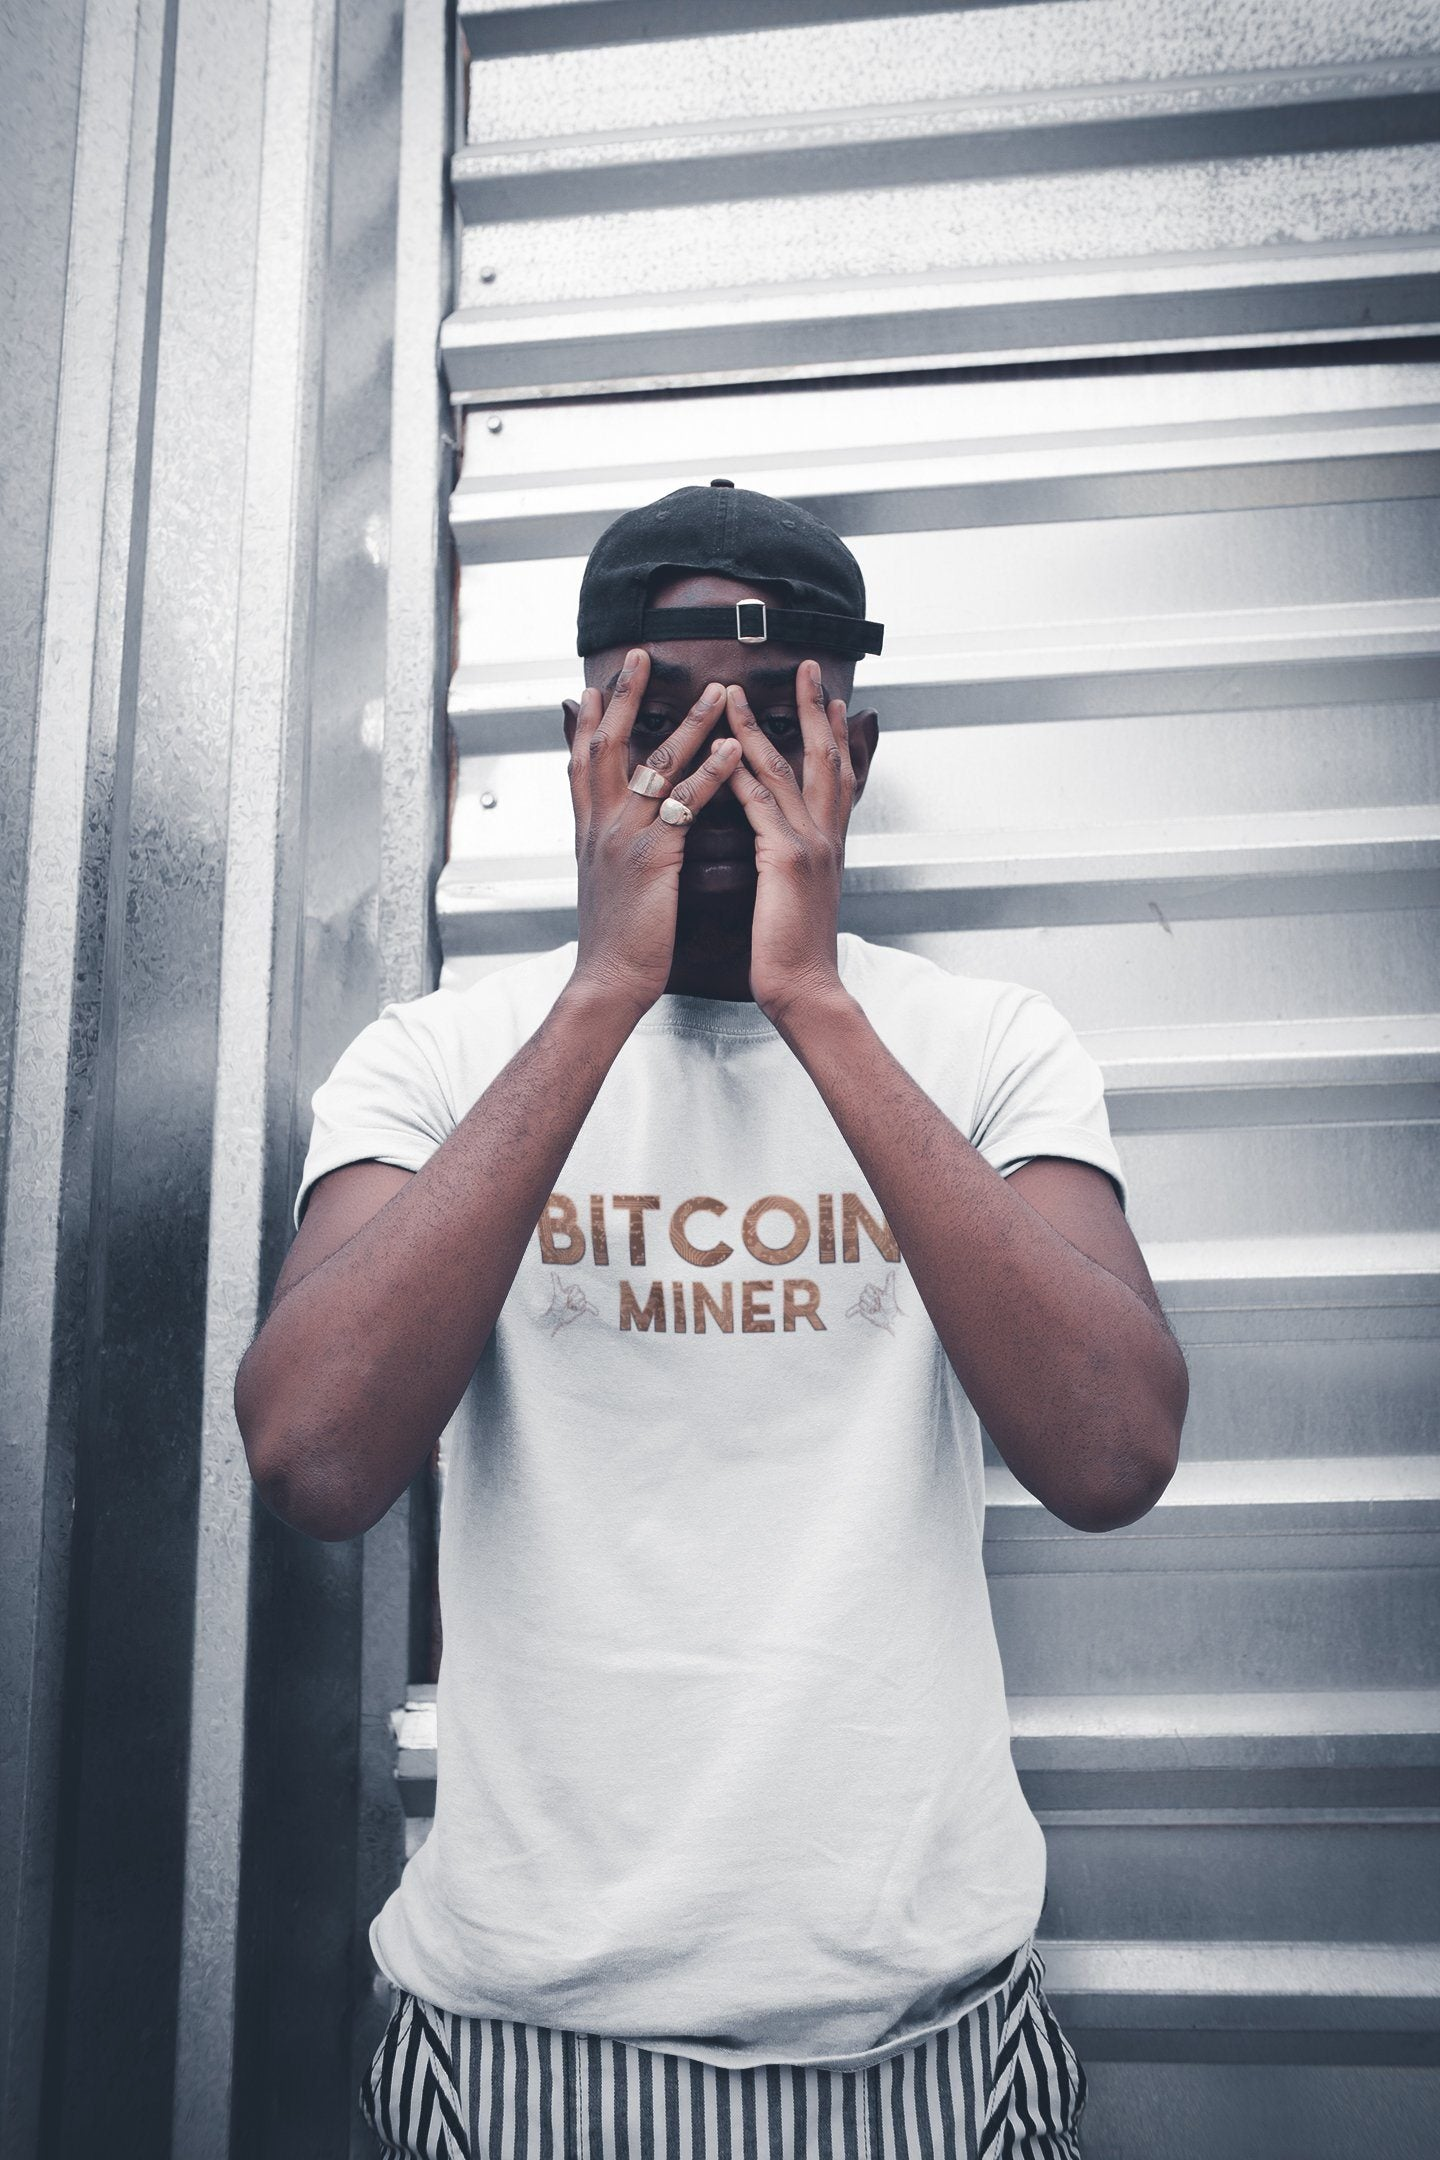 Bitcoin Miner TeeT-shirtEntrepreneurKing.coWhiteS motivational quotes entrepreneur inspirational quotes